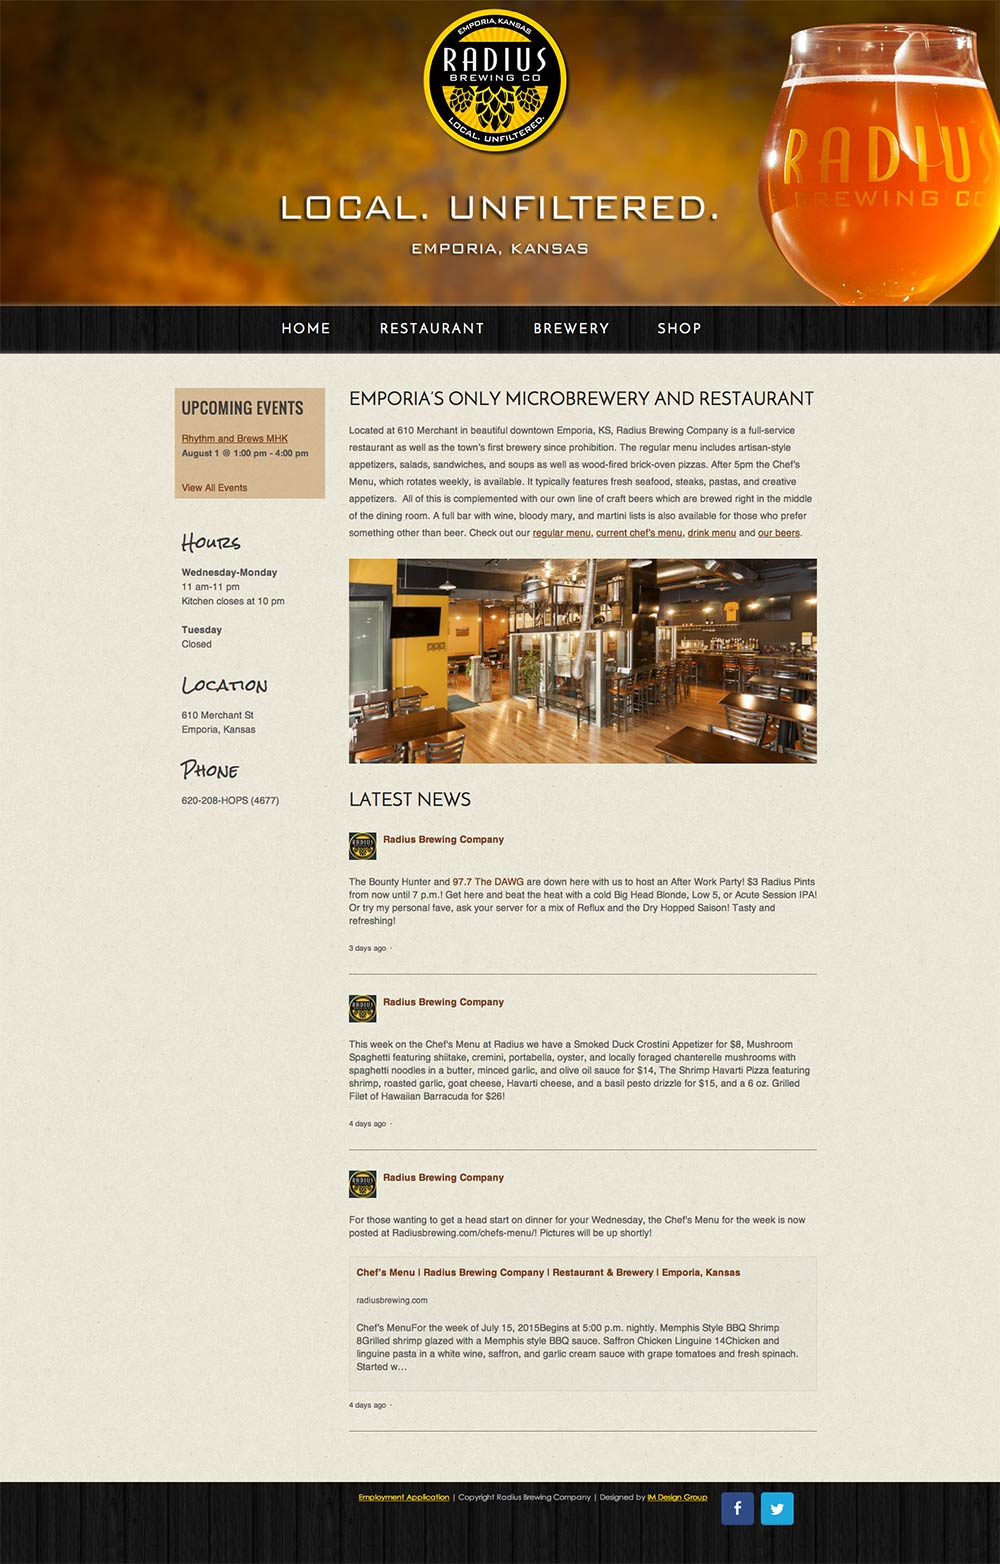 radius-brewing-company-website